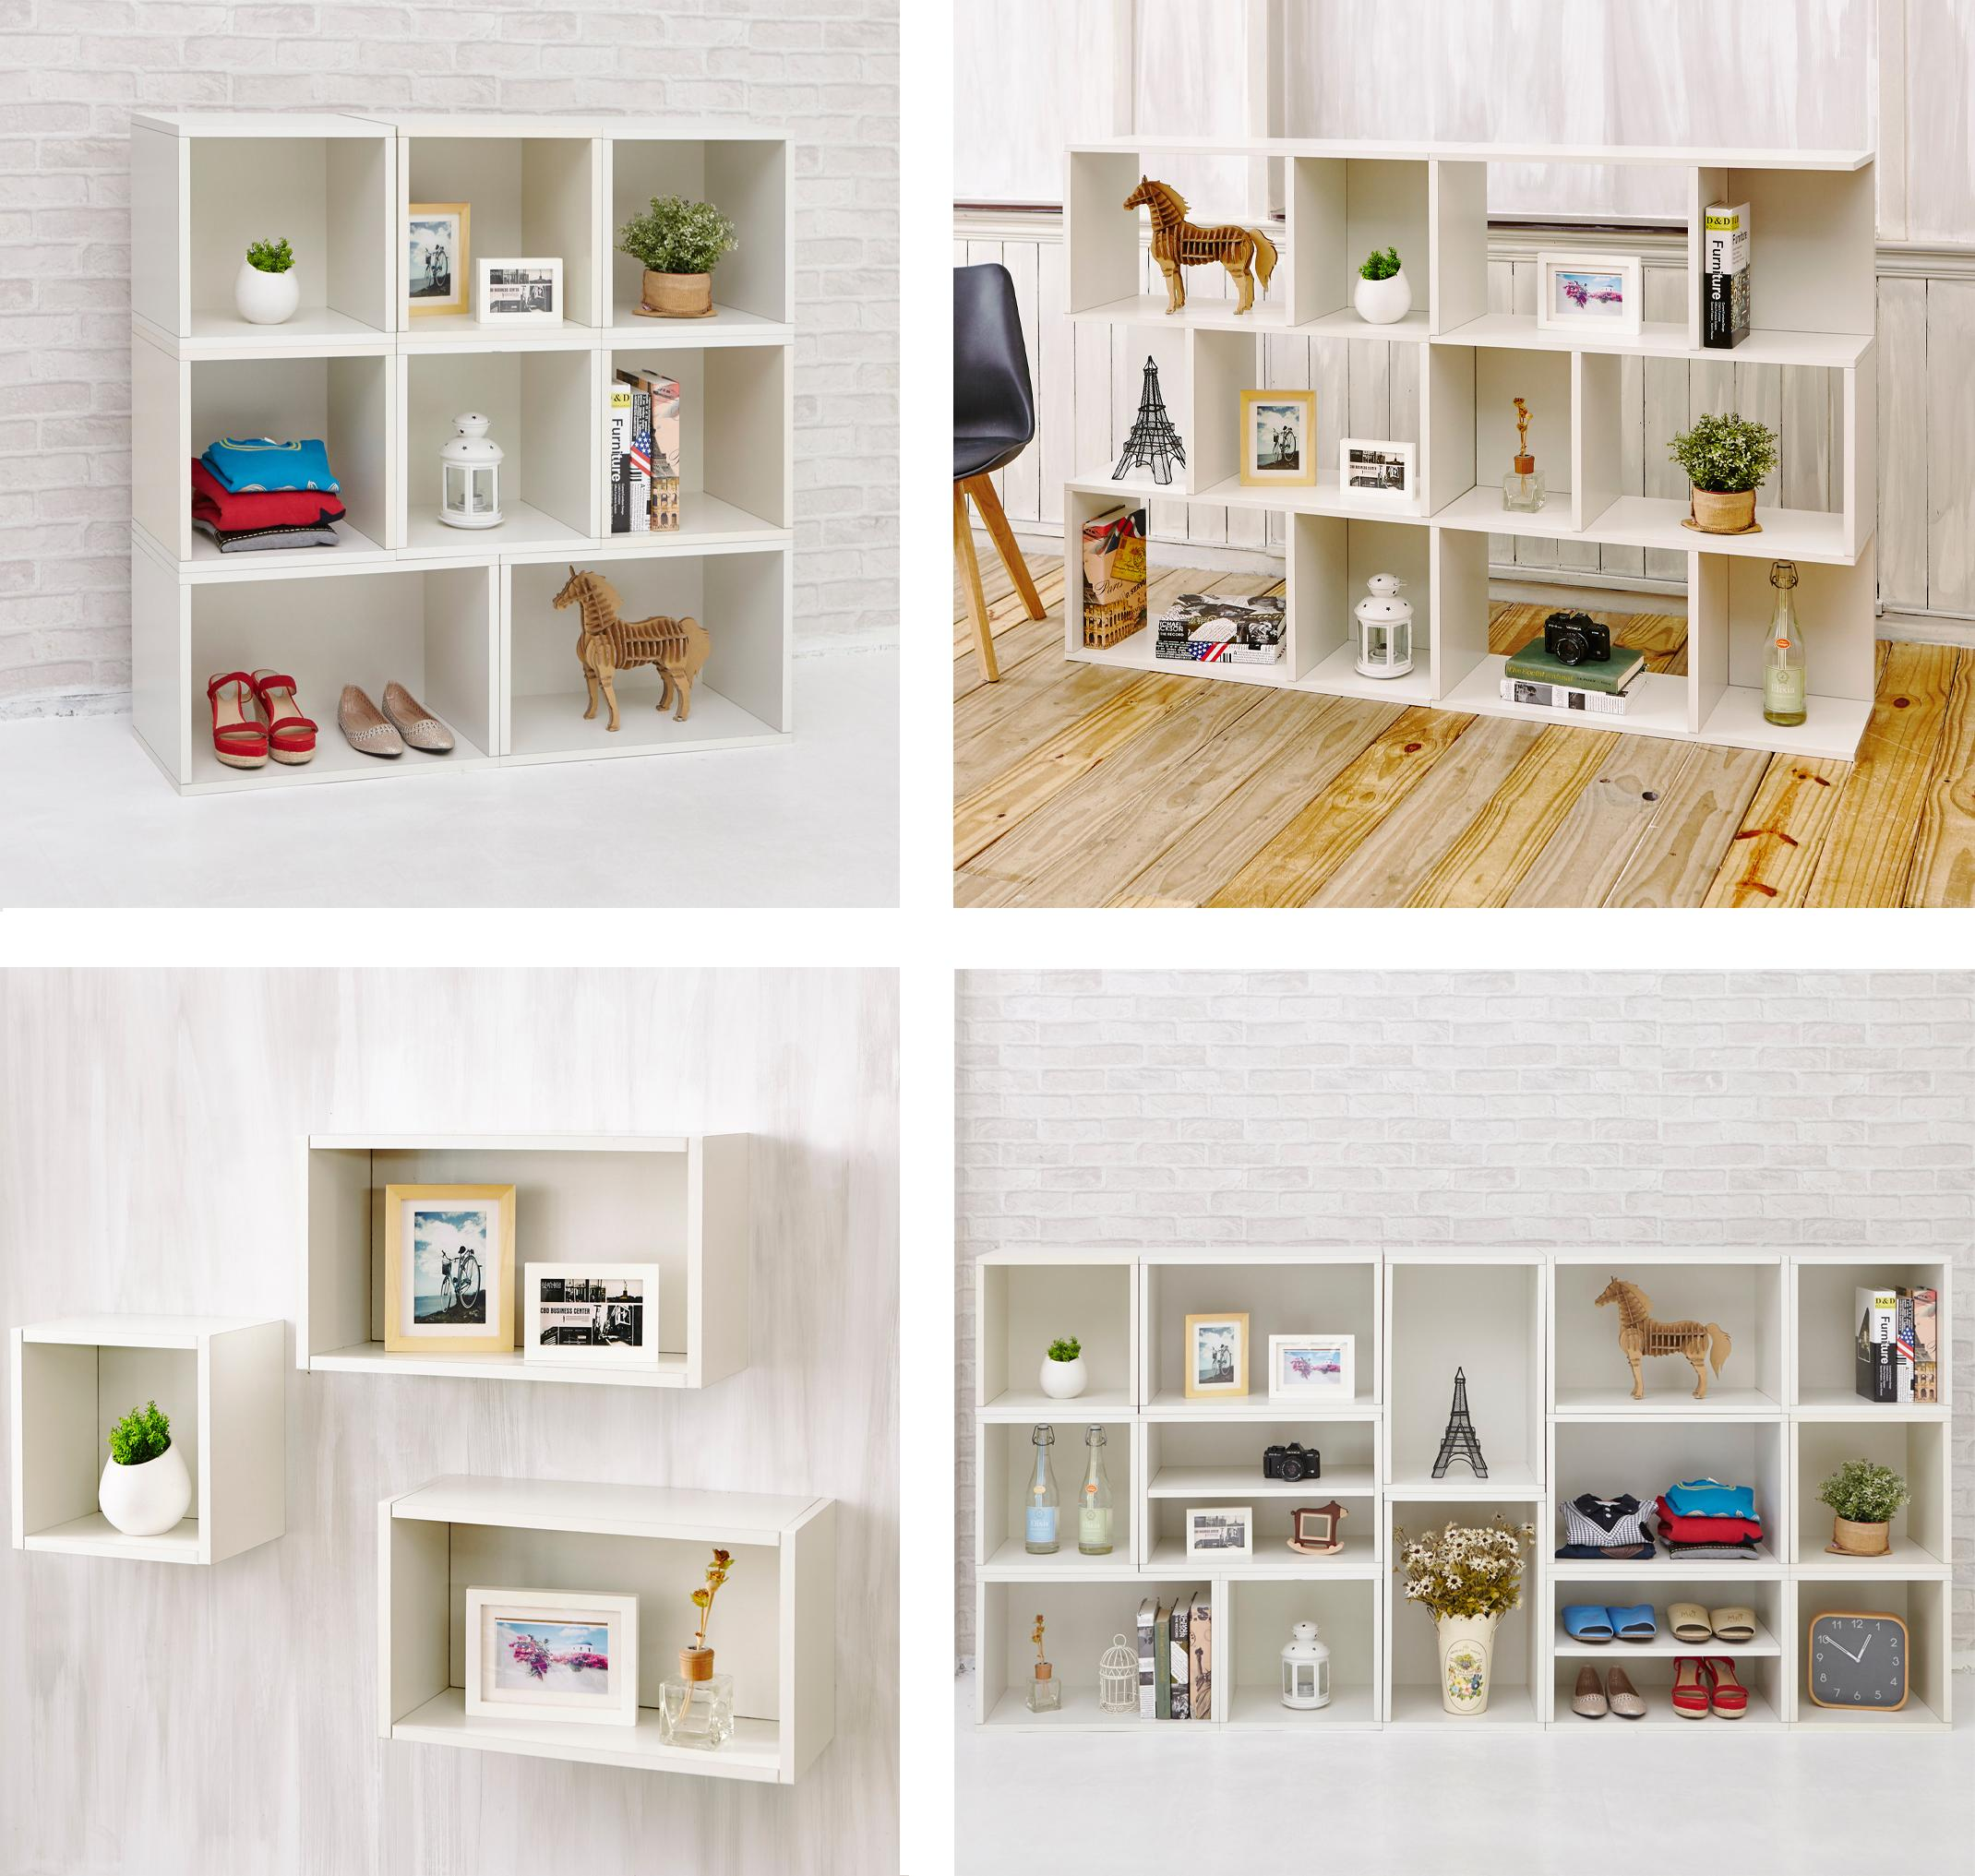 Amazon.com: Way Basics Eco Madison Bookcase, Room Divider